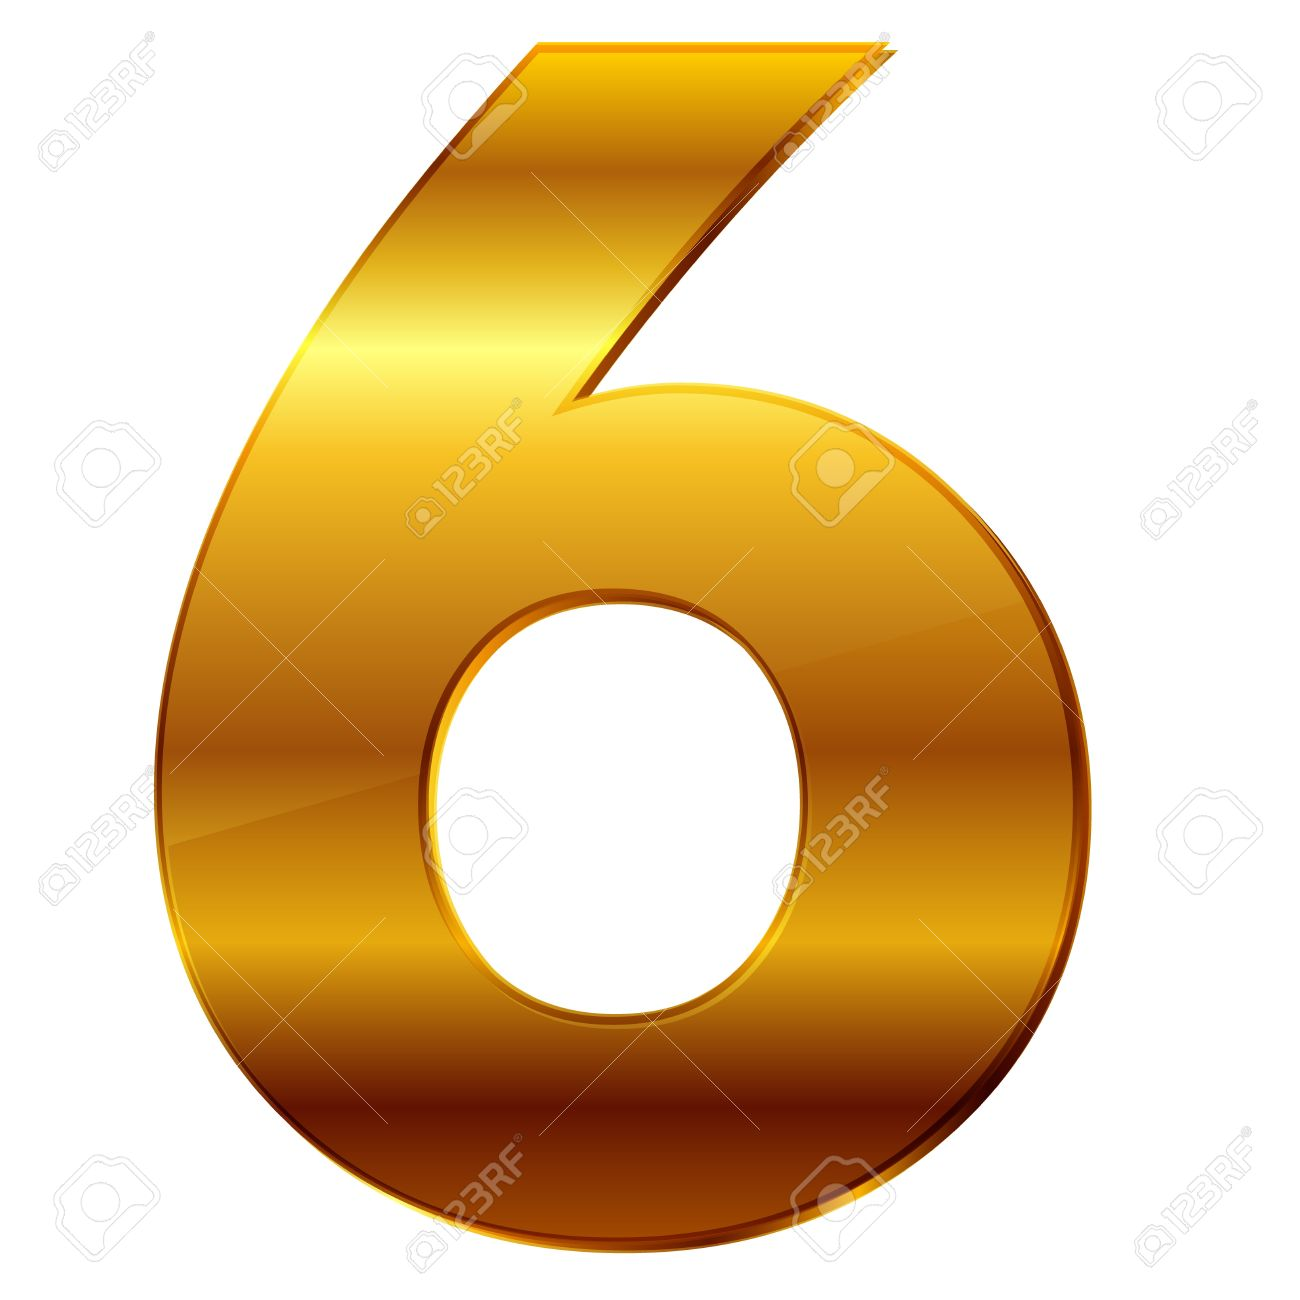 6 >> Number 6 In Gold Royalty Free Cliparts Vectors And Stock